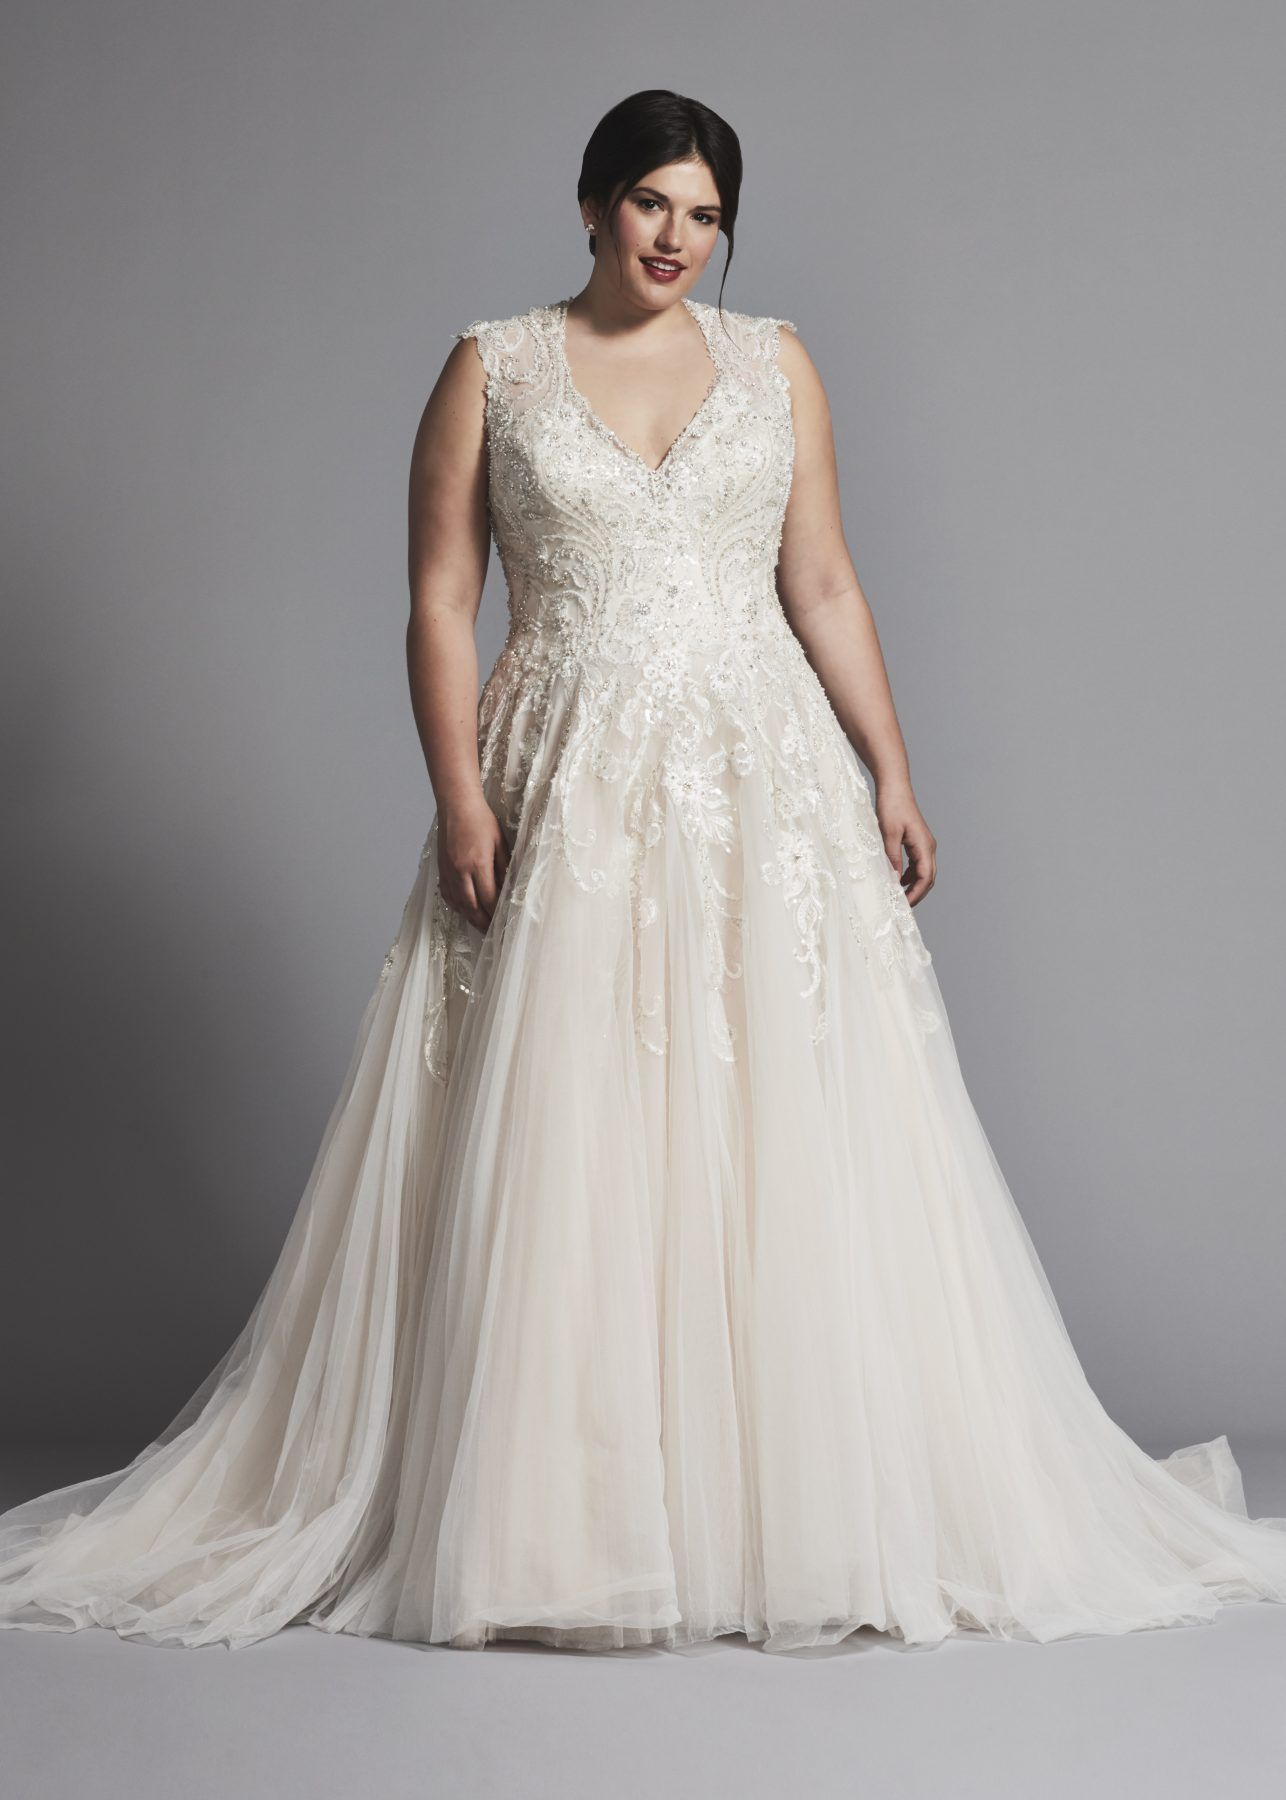 Plus Size Sleeveless V Neck Tulle A Line Wedding Dress With Embroideries Danielle Caprese Plus Size Wedding Gowns Wedding Dresses Plus Size Bridal Dresses